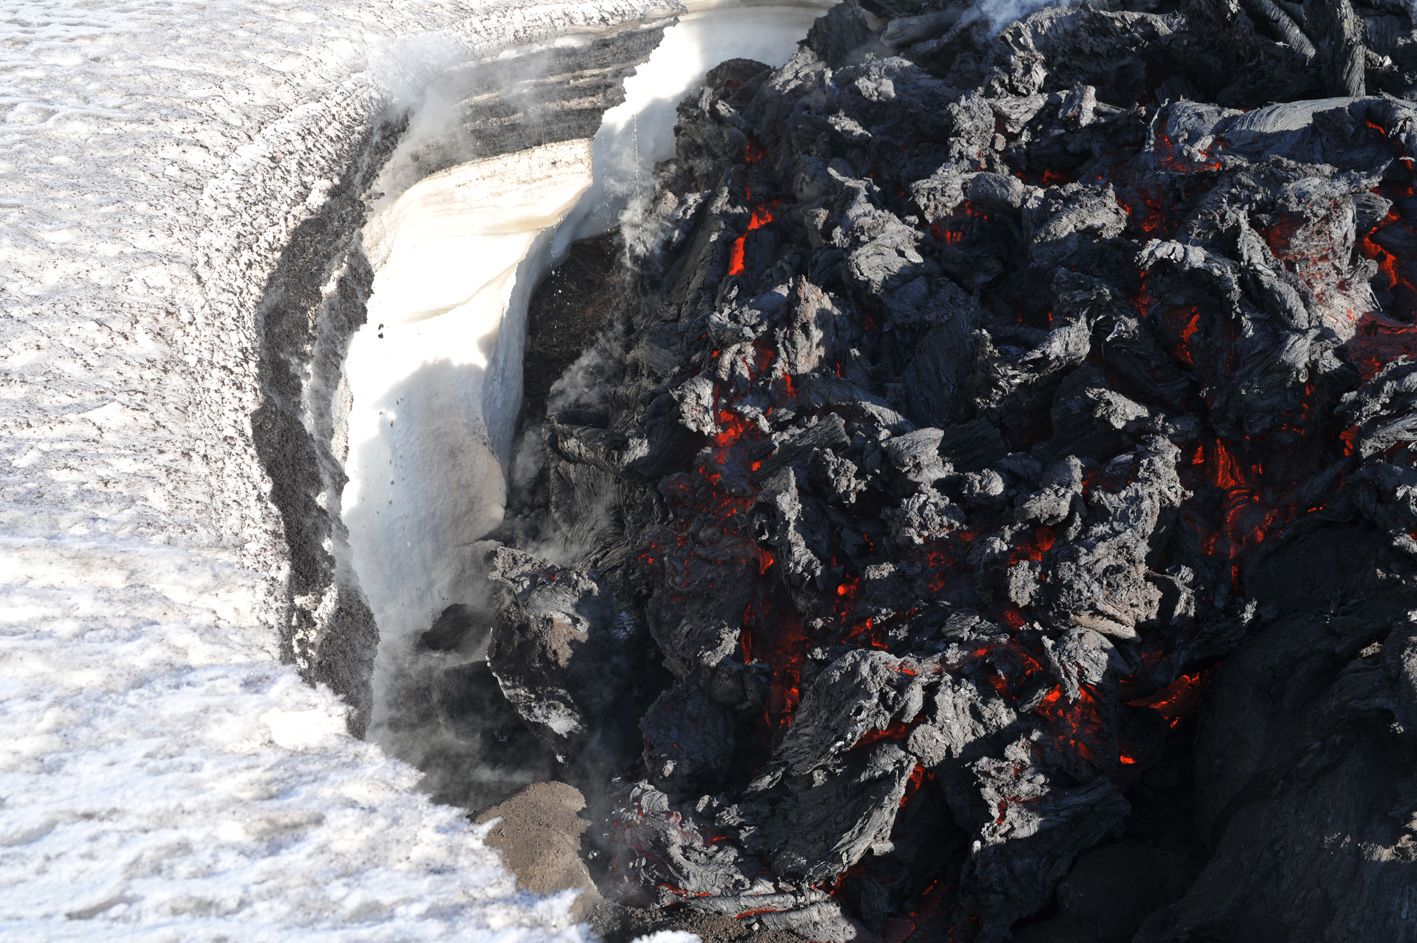 Front of advancing lava flow moving against snow bank.